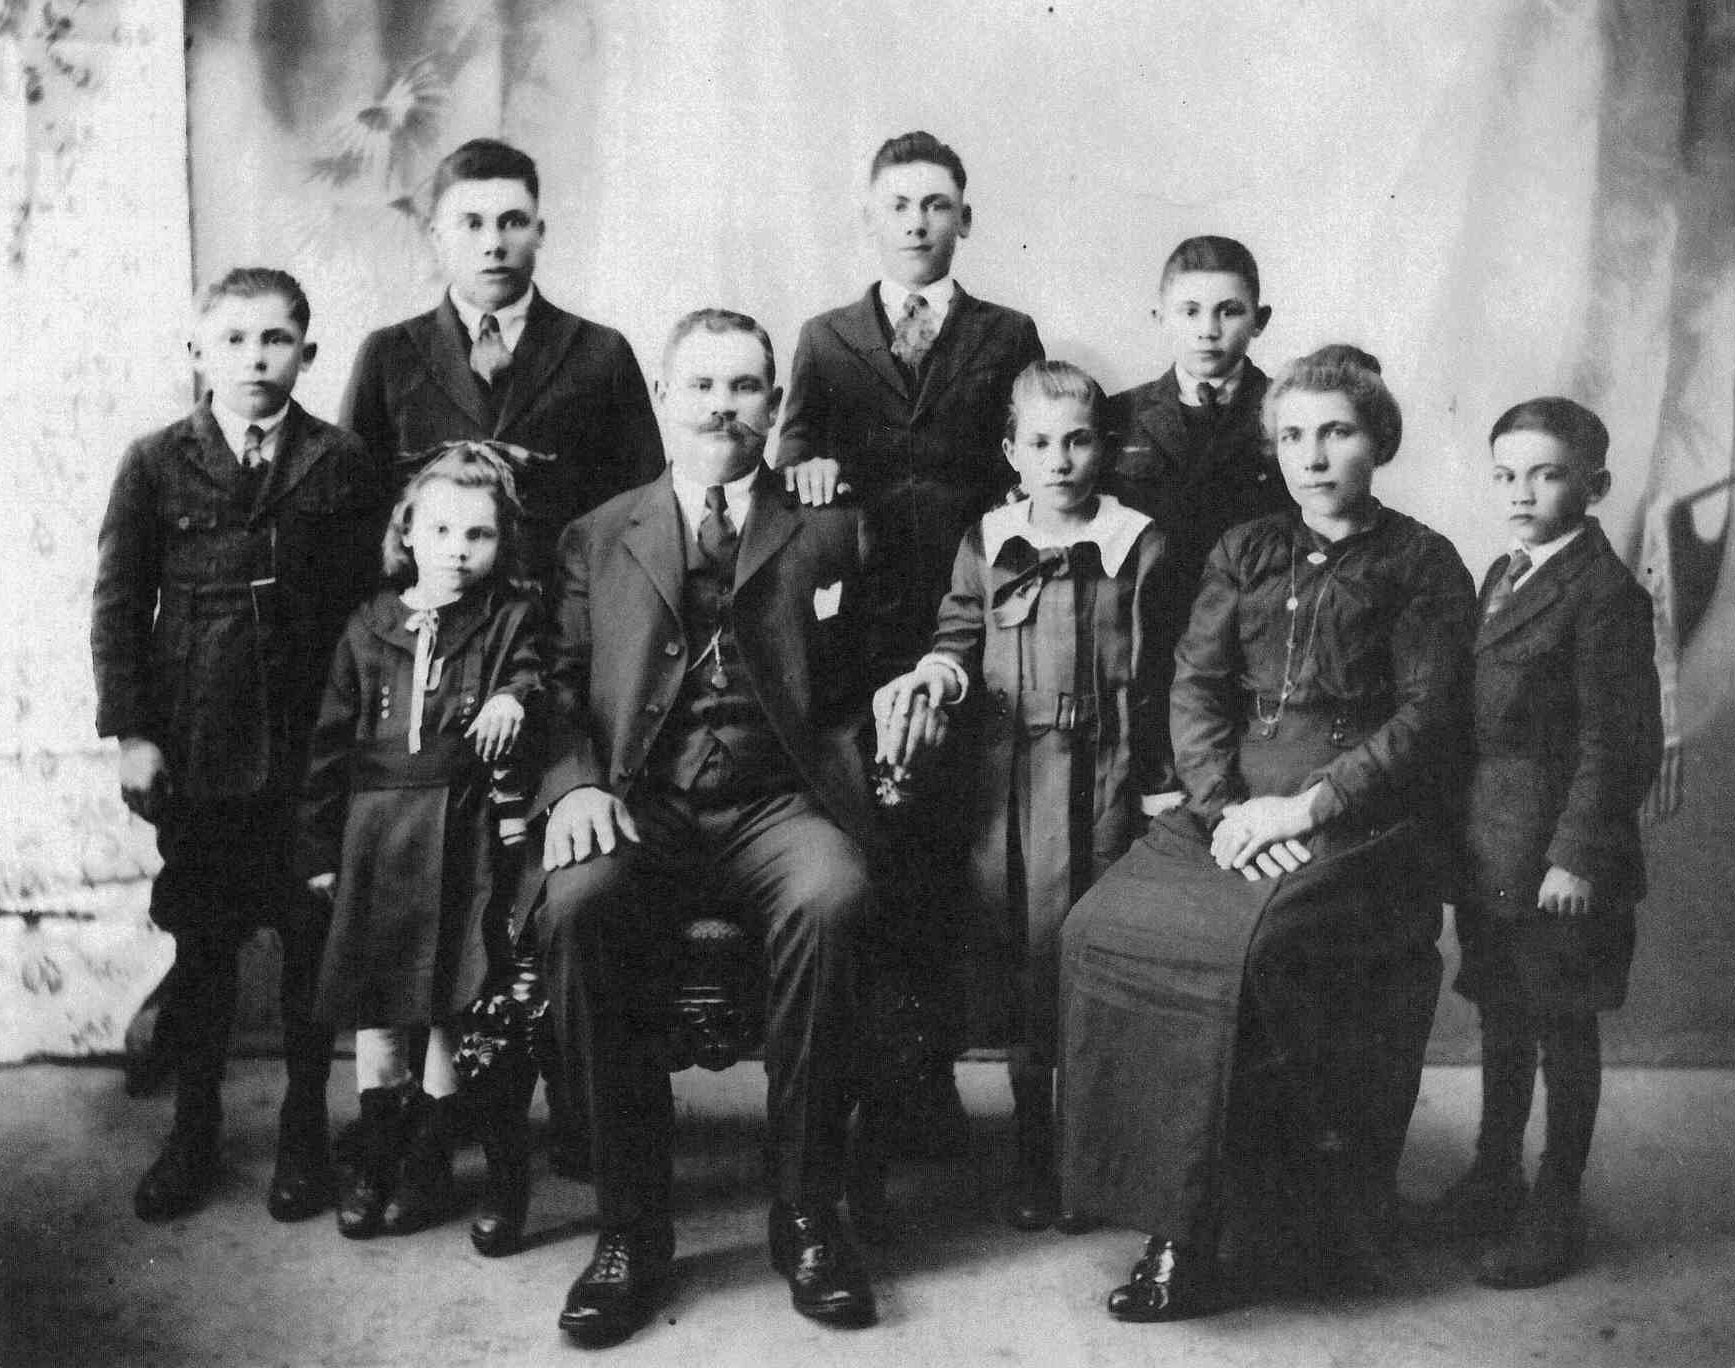 Bronco Wine Company Black and White Historic Photo of Company Founders and their Family